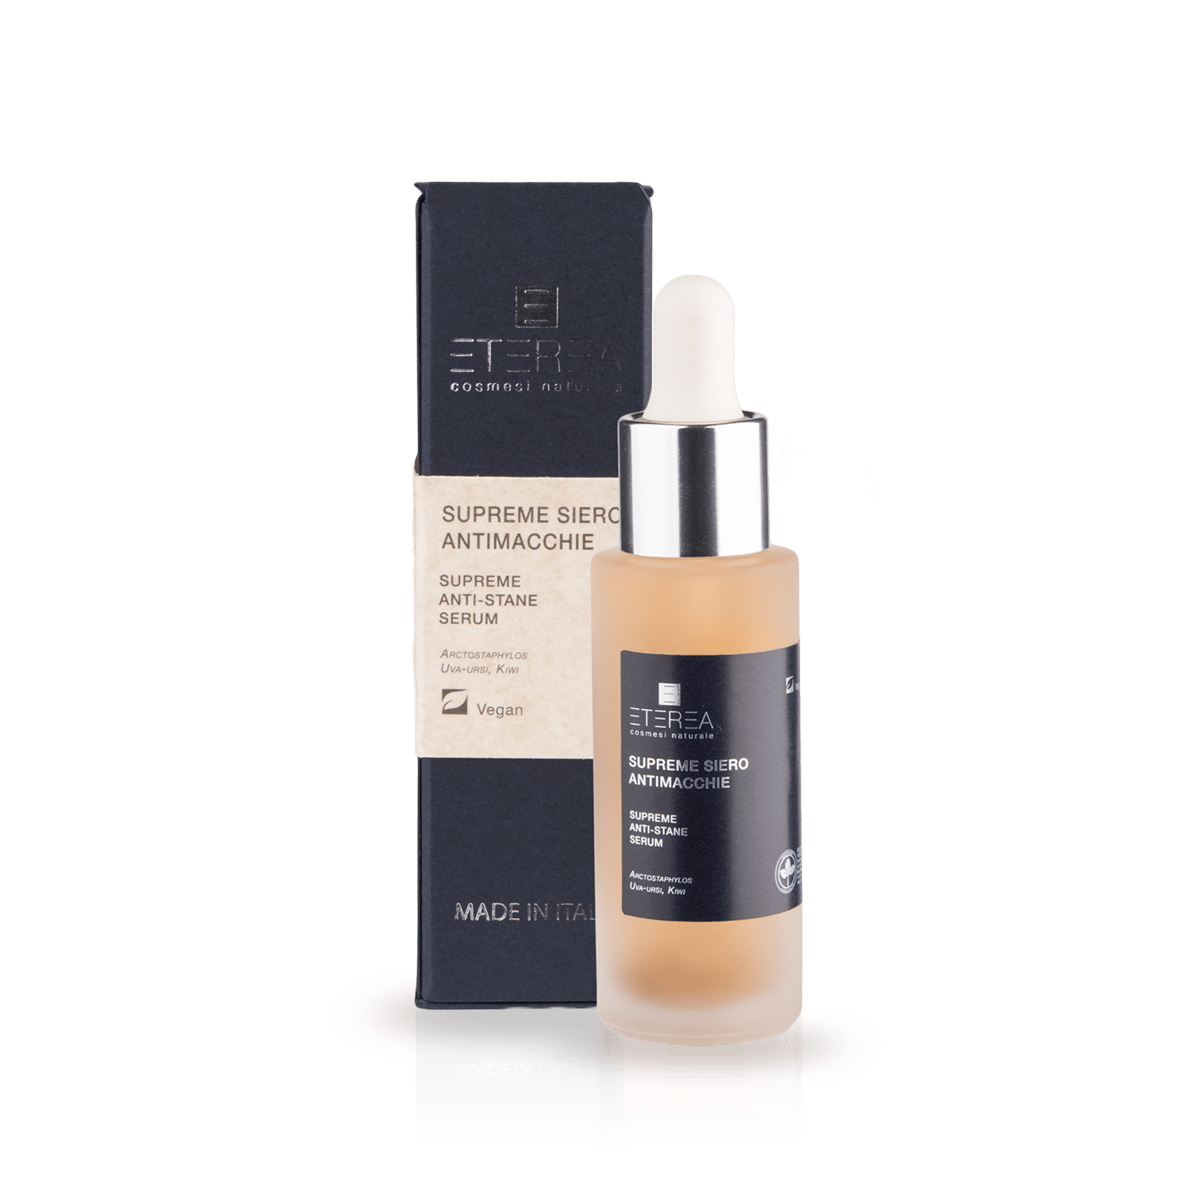 ETEREA Cosmesi Naturale Supreme Anti-Stane Serum - 30 ml von ETEREA Cosmesi Naturale